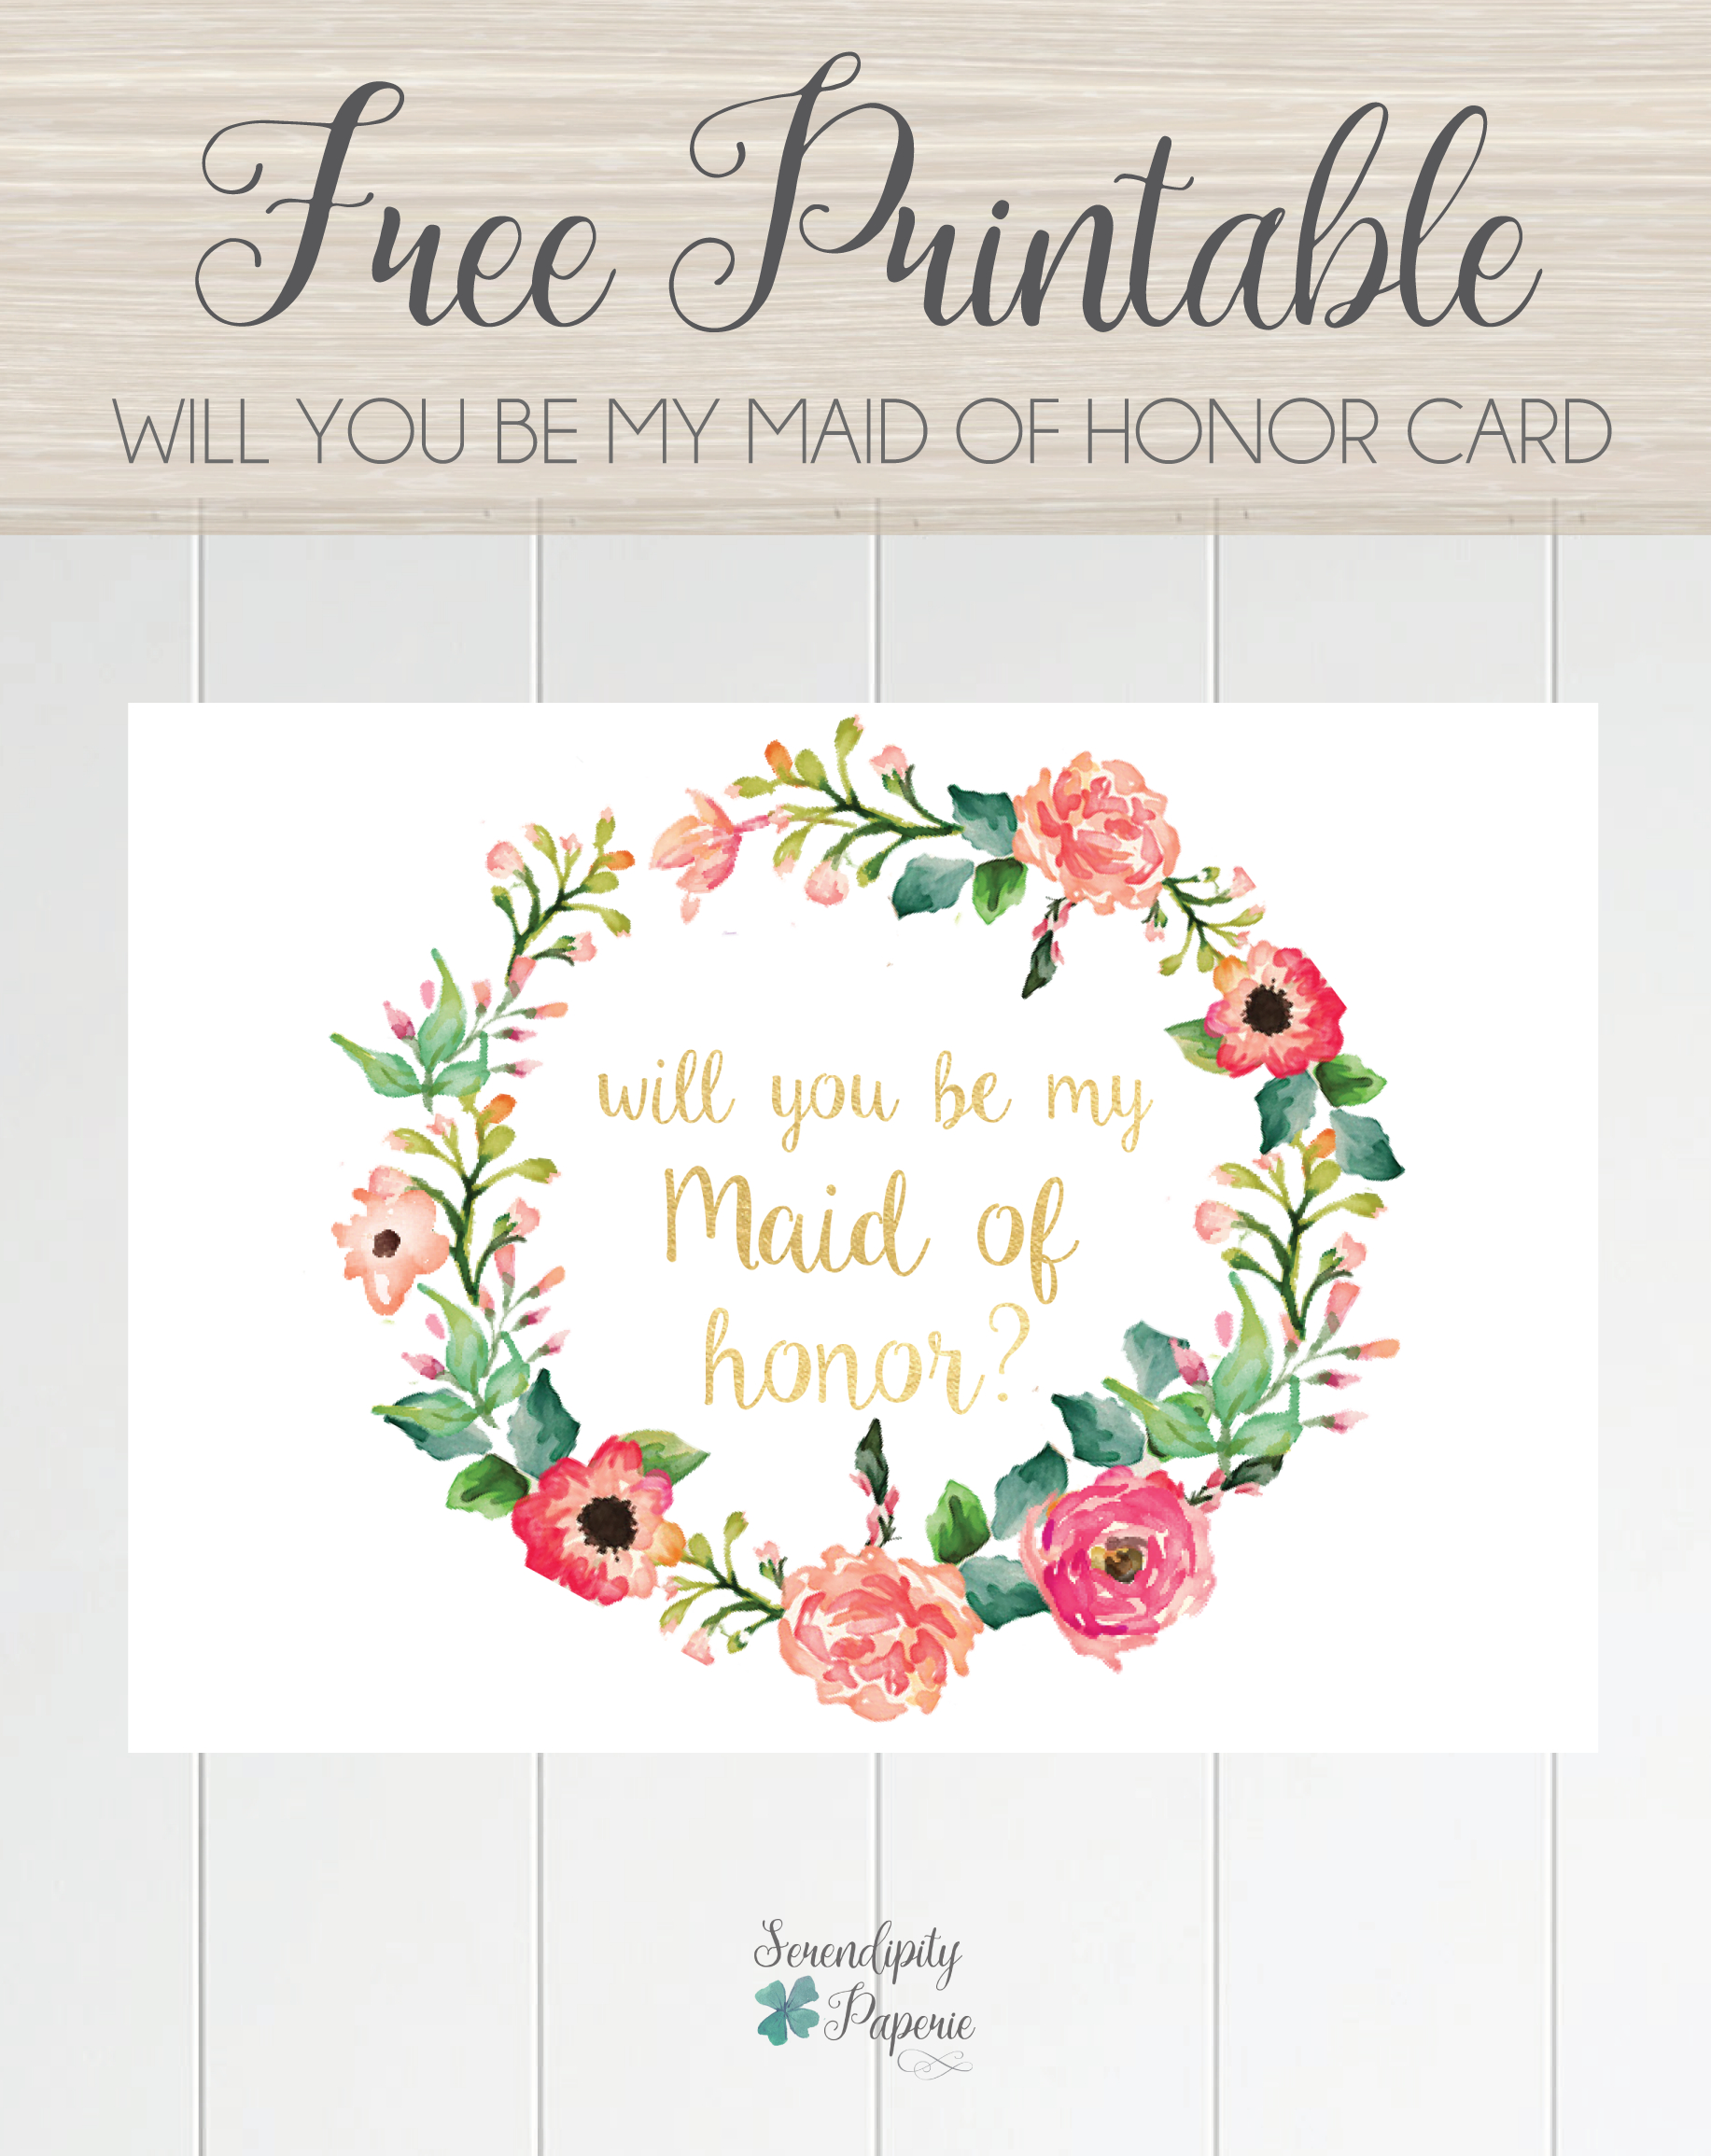 will you be my bridesmaid letter template Collection-Free printable will you be my maid of honor card floral wreath bridesmaid card 17-c